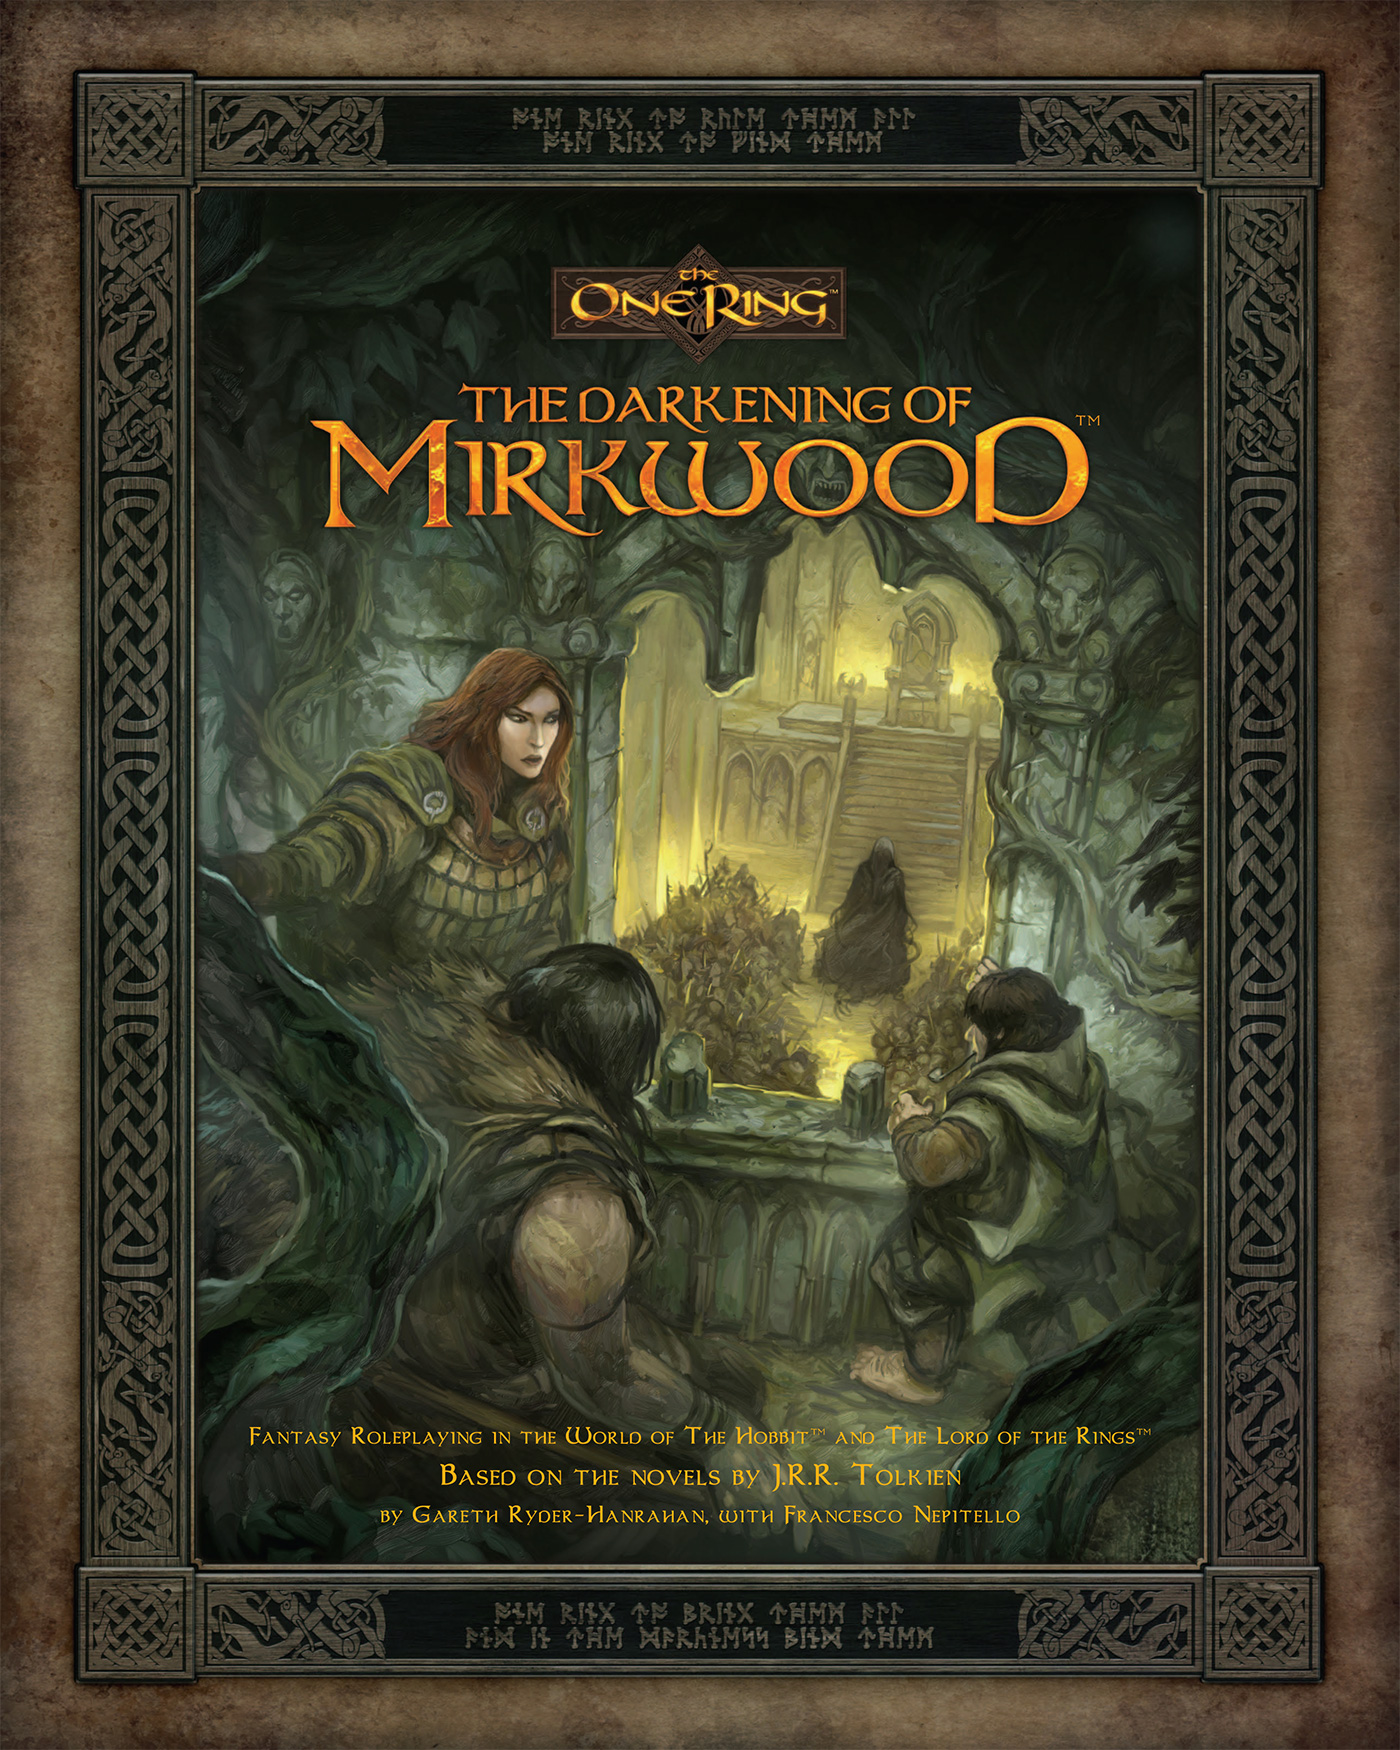 The Darkening of Mirkwood